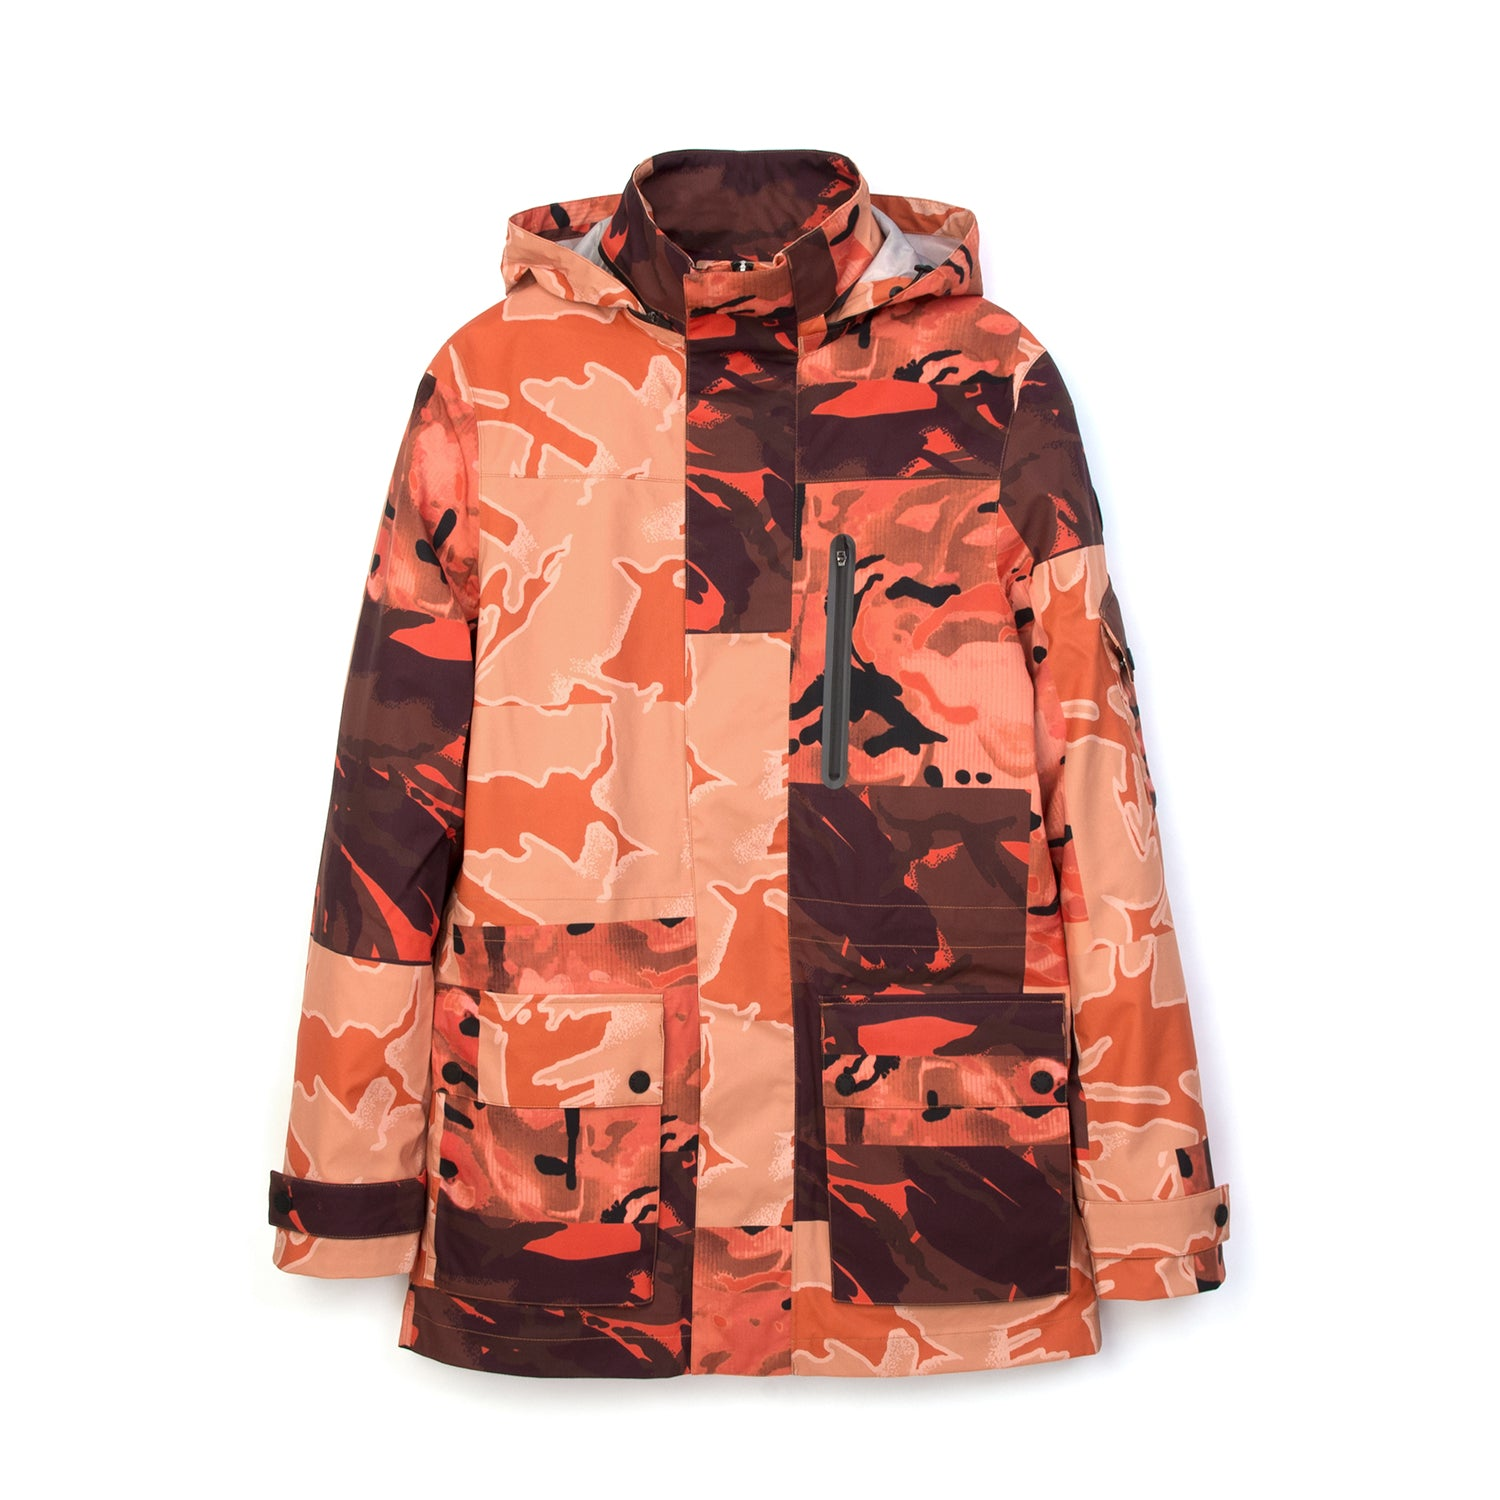 Christopher Raeburn x Save The Duck Woven Jacket FLAG6 Orange